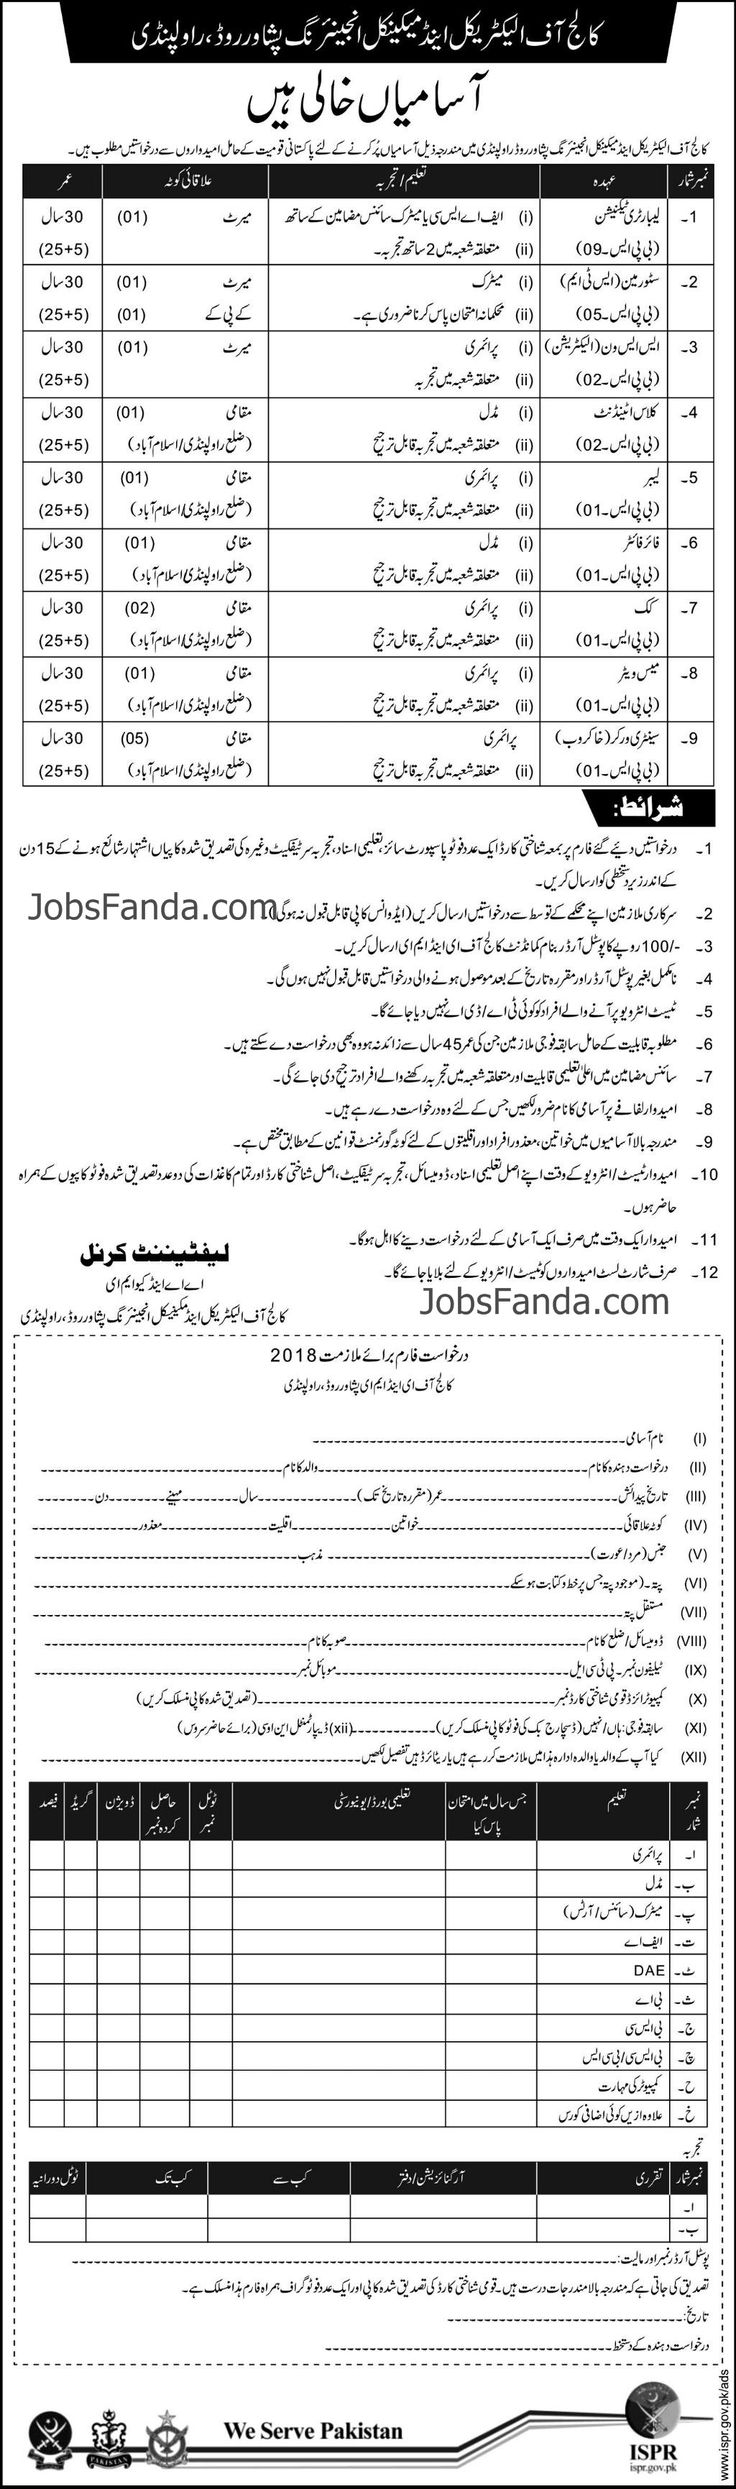 College Of Electrical And Mechanical Engineering CEME Jobs 2018 In Rawalpindi For Technicians And Sanitary Worker https://www.jobsfanda.com/college-of-electrical-and-mechanical-engineering-ceme-jobs-2018-in-rawalpindi-for-technicians-and-sanitary-worker/